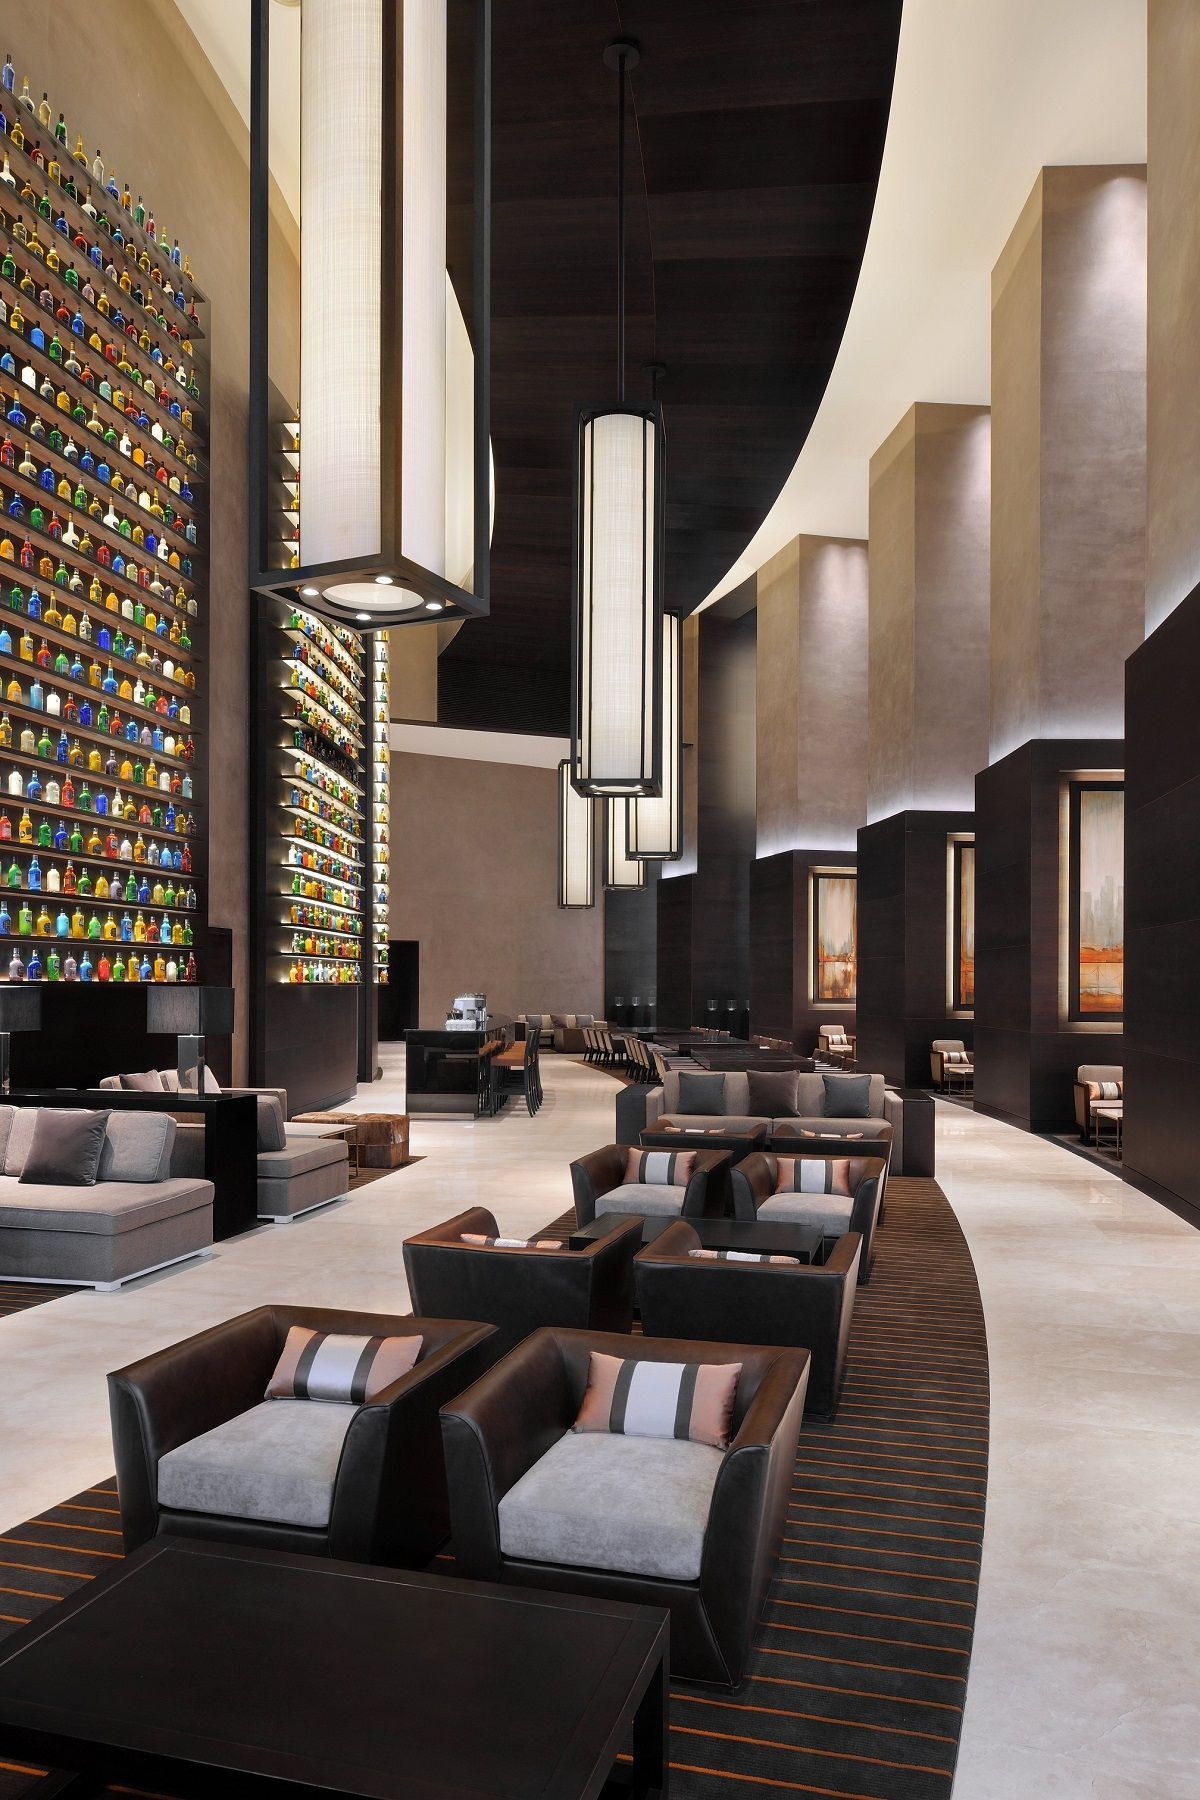 Hotel lobbies is blog with luxuious tast in a modern furniture come